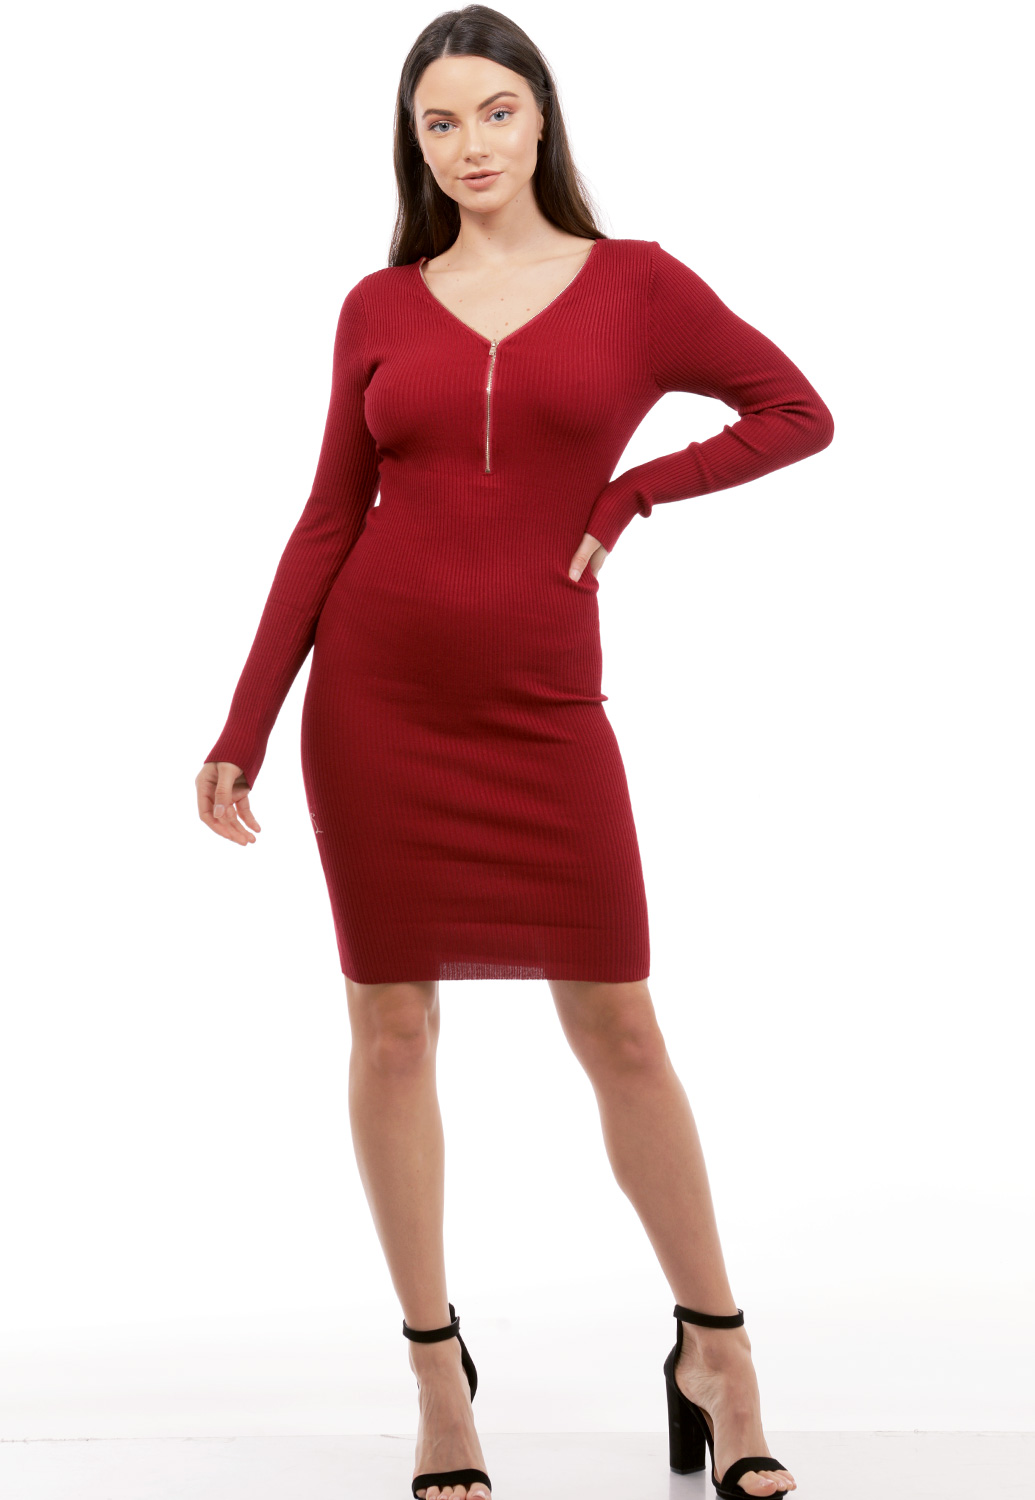 Zip Up Detail Knit Bodycon Dress